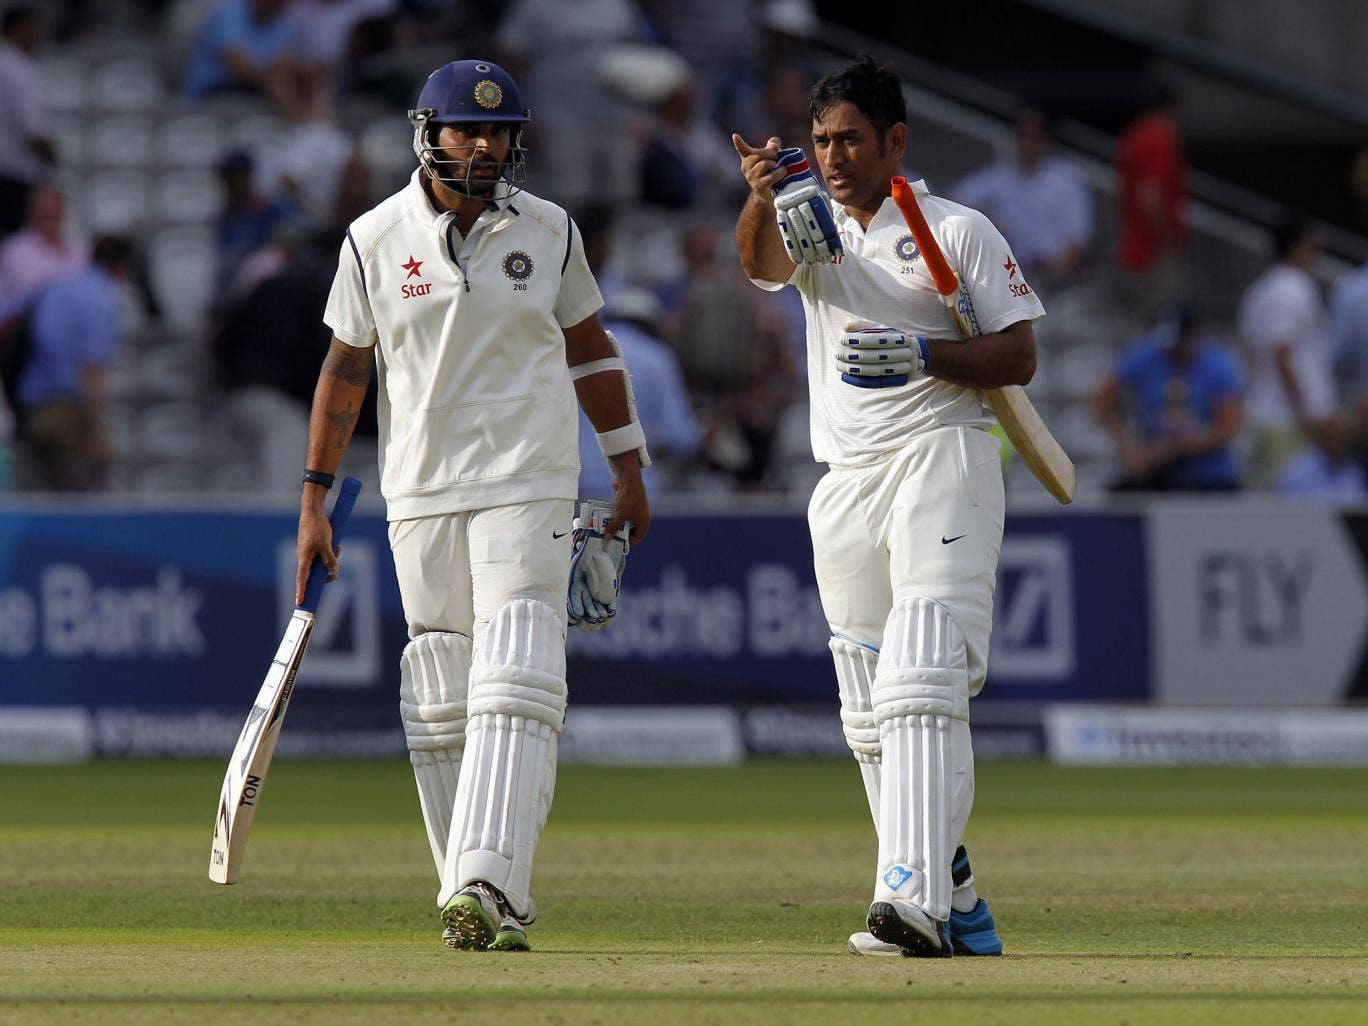 Indias Murali Vijay (L) and Indias Captain MS Dhoni